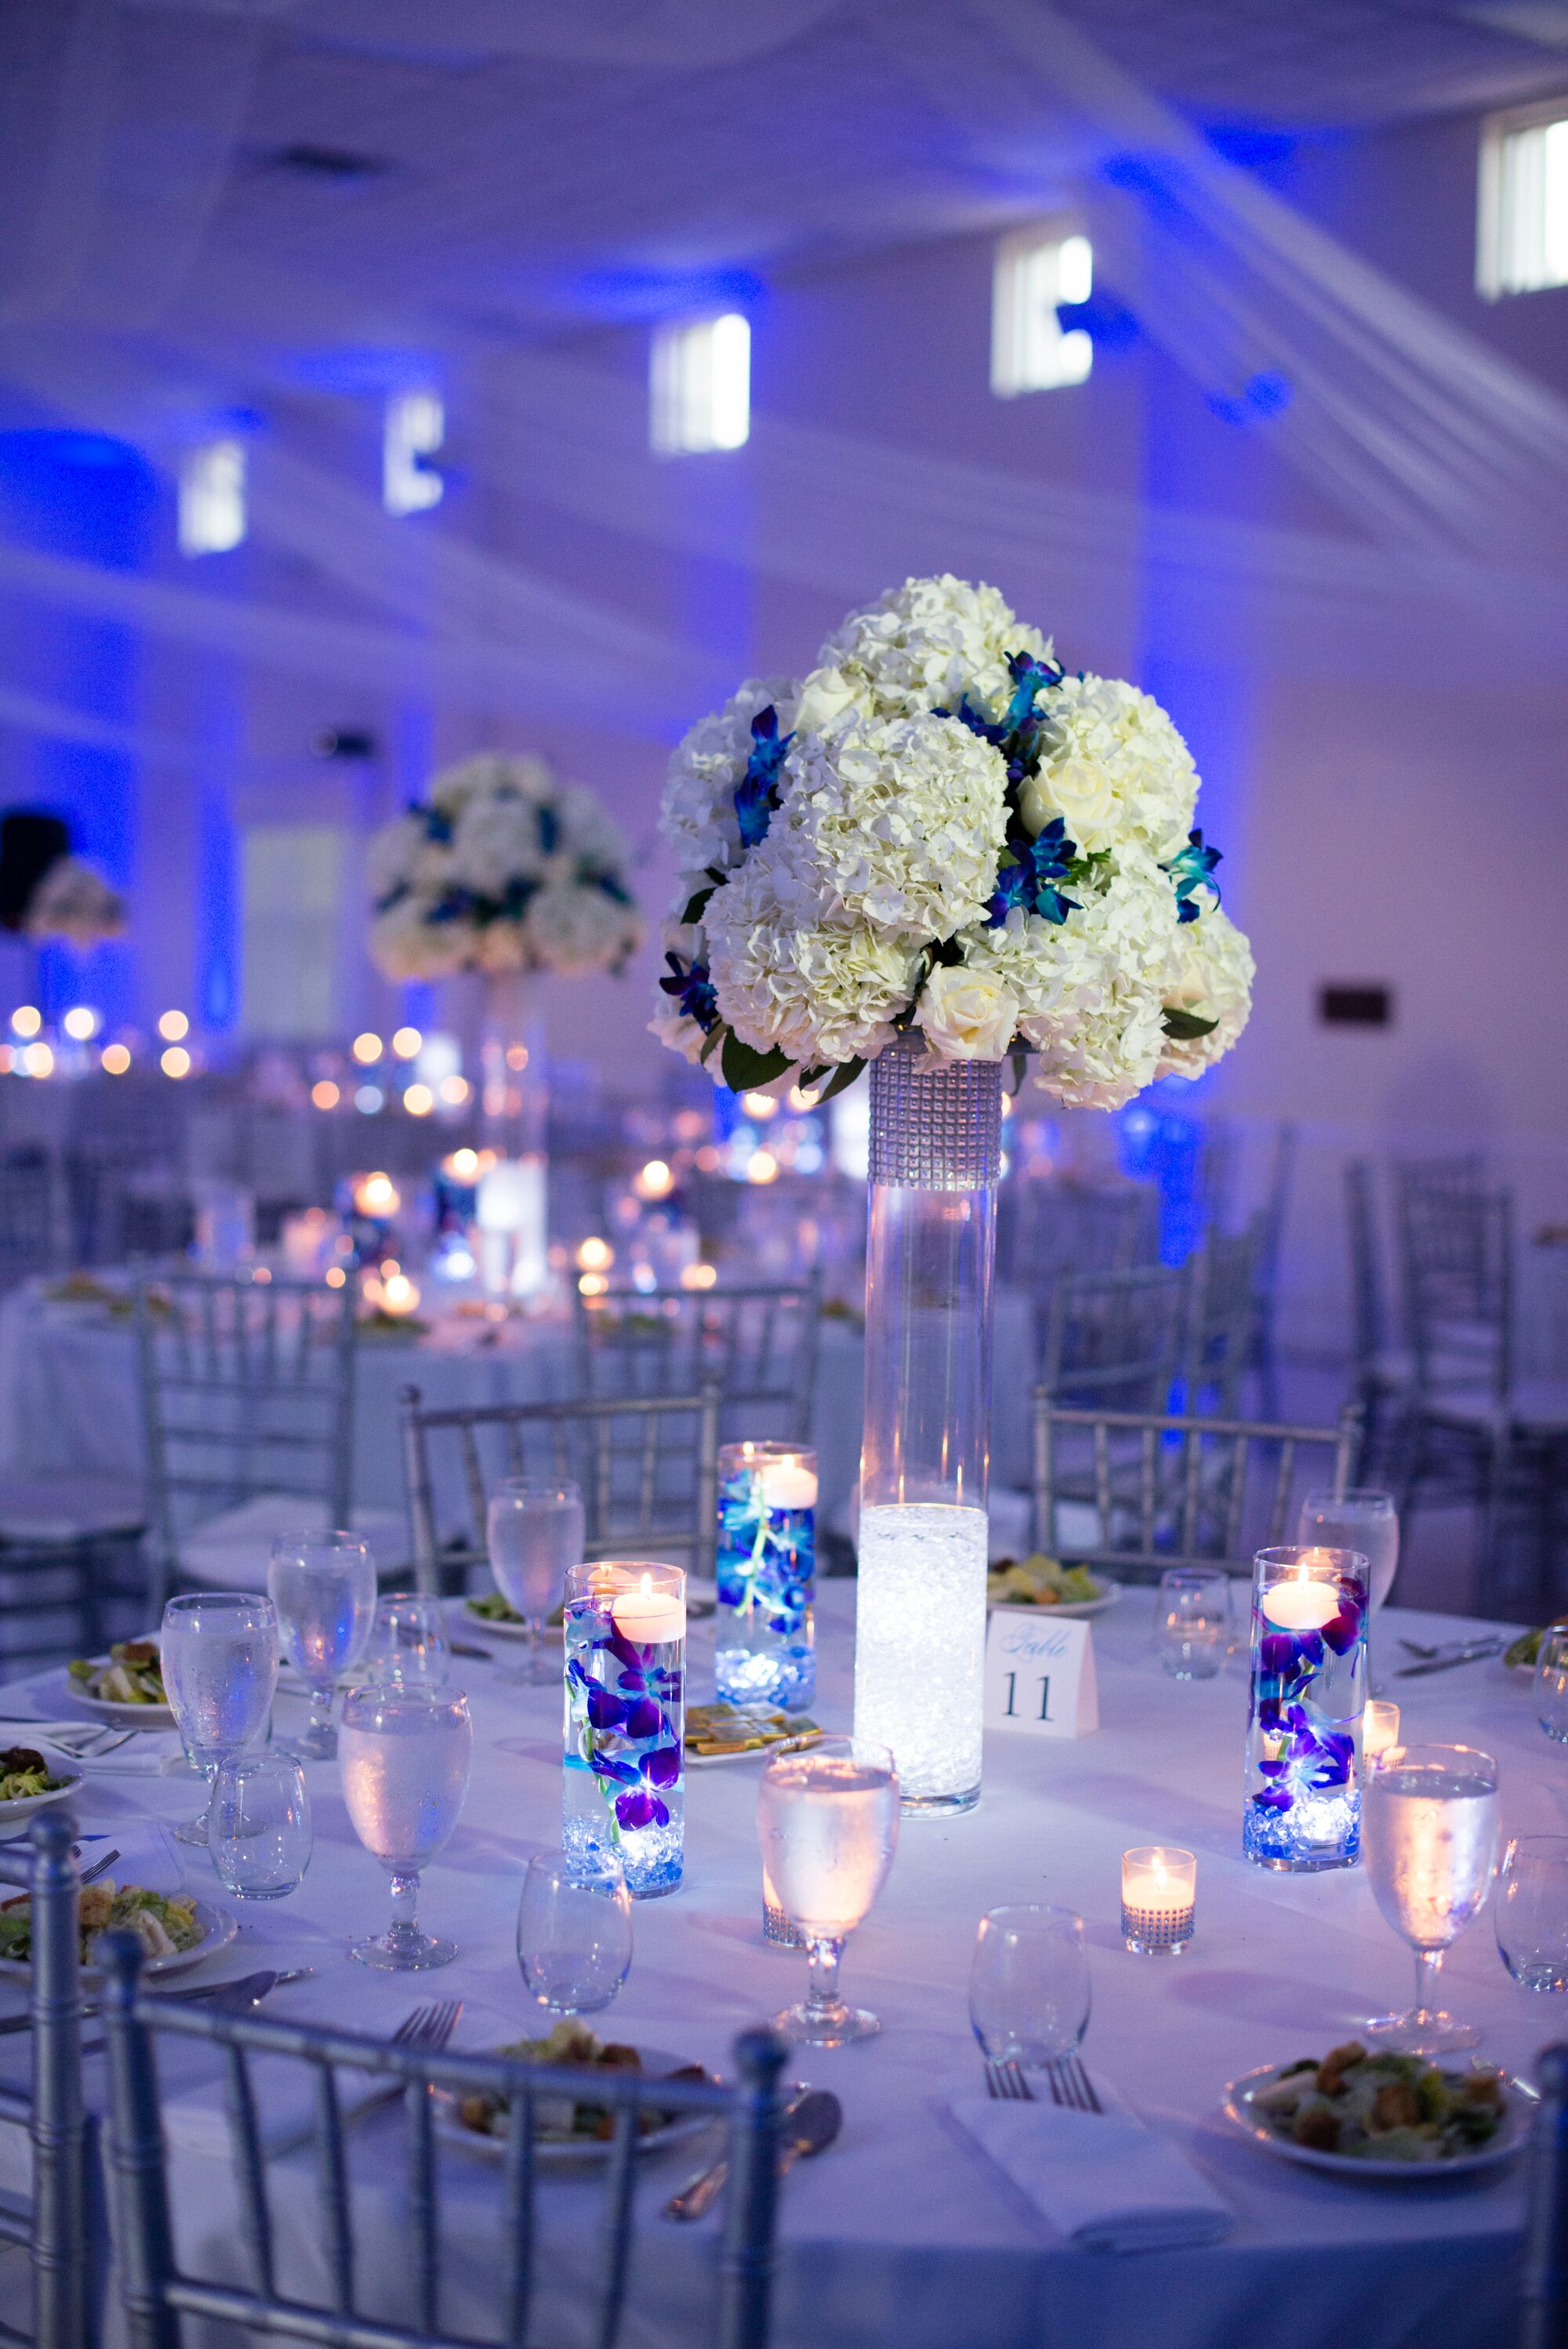 White And Silver Reception Decor With Blue Uplighting